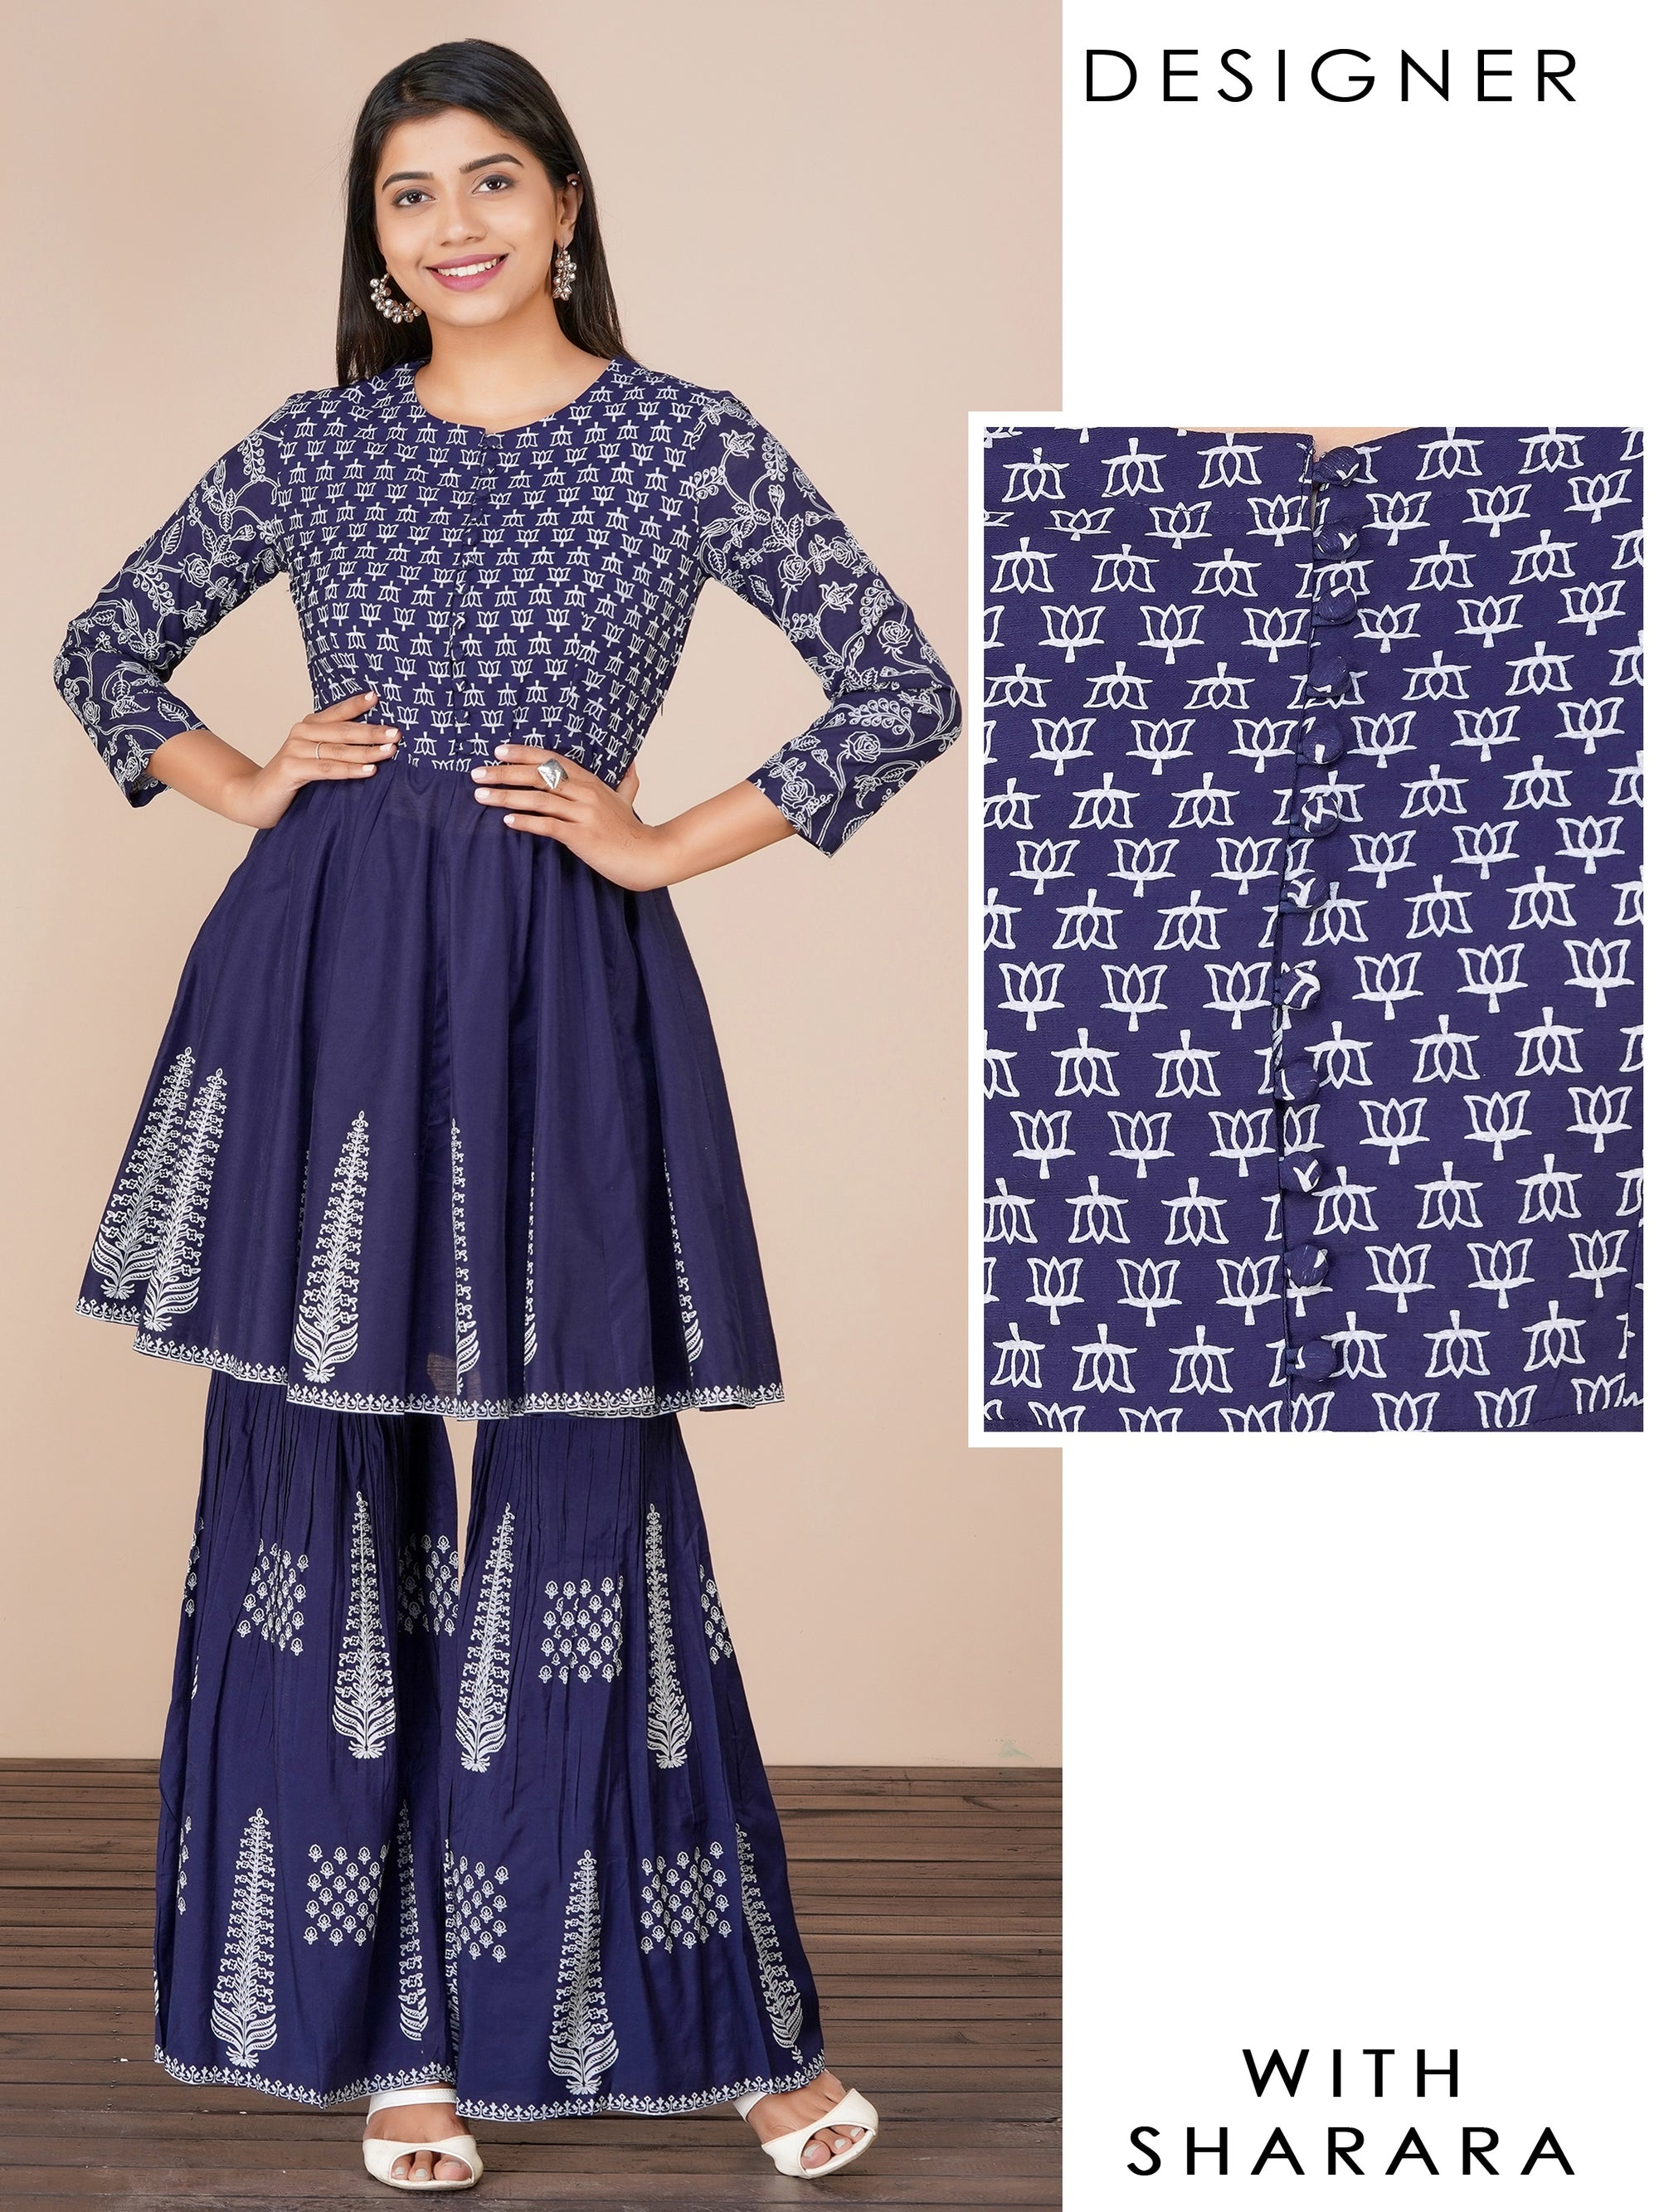 Lotus & Floral Printed Designer Kurti with Pinnate Leaf Printed Sharara – Navy Blue